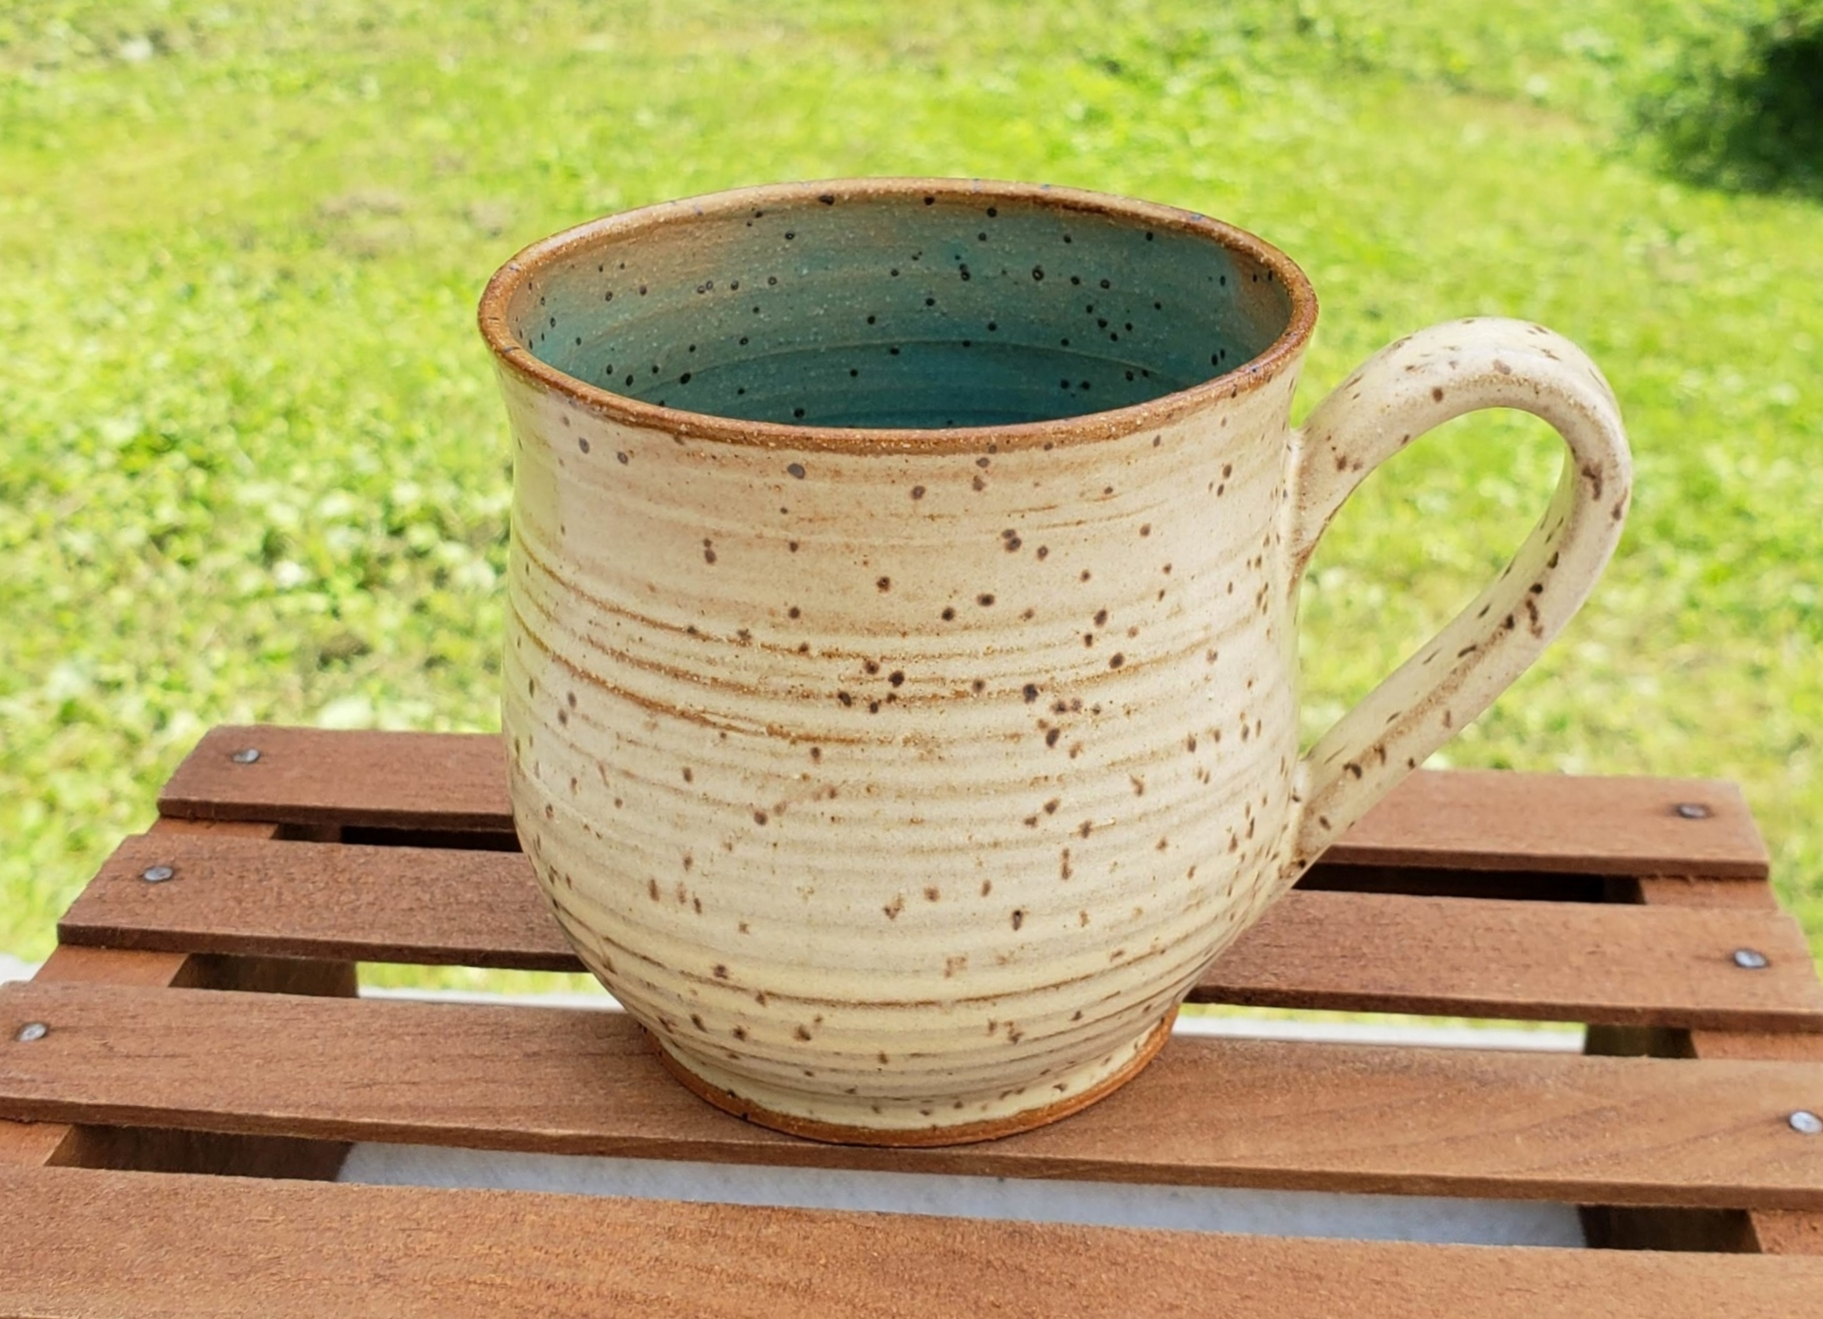 medium mug - cream and turquoise glazespeckled tan clay body11 ounce capacity$26#MM007